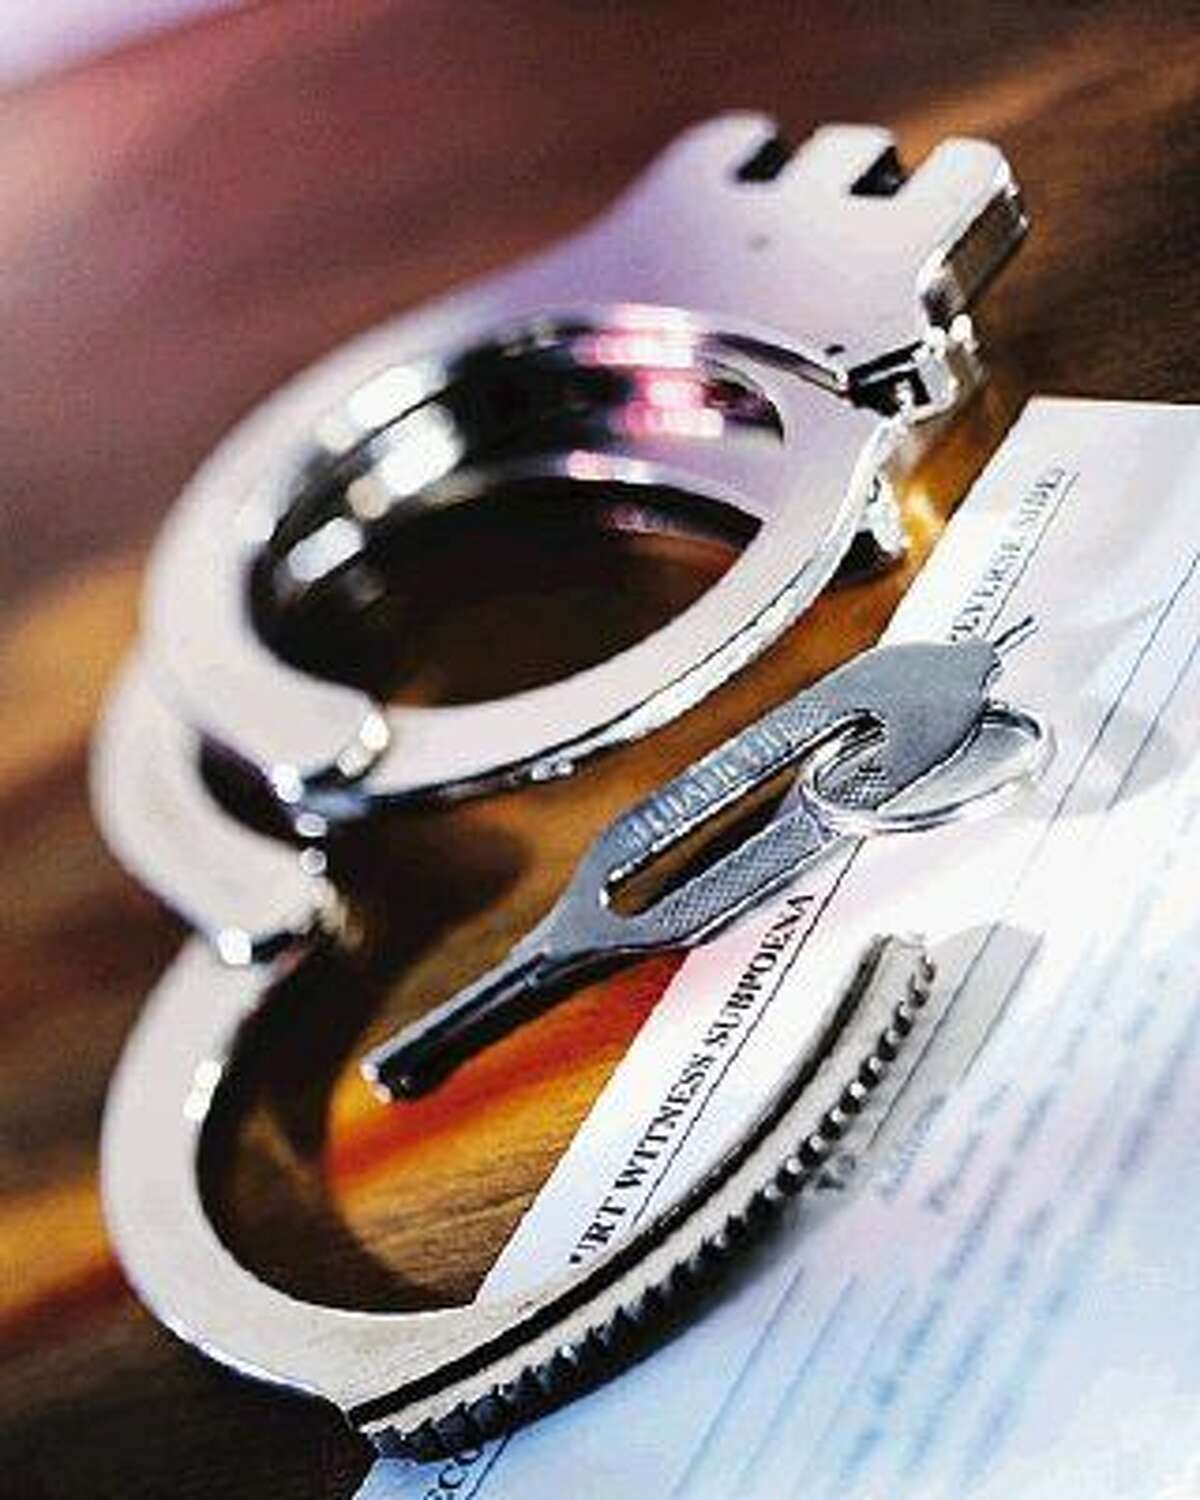 Handcuffs and Key